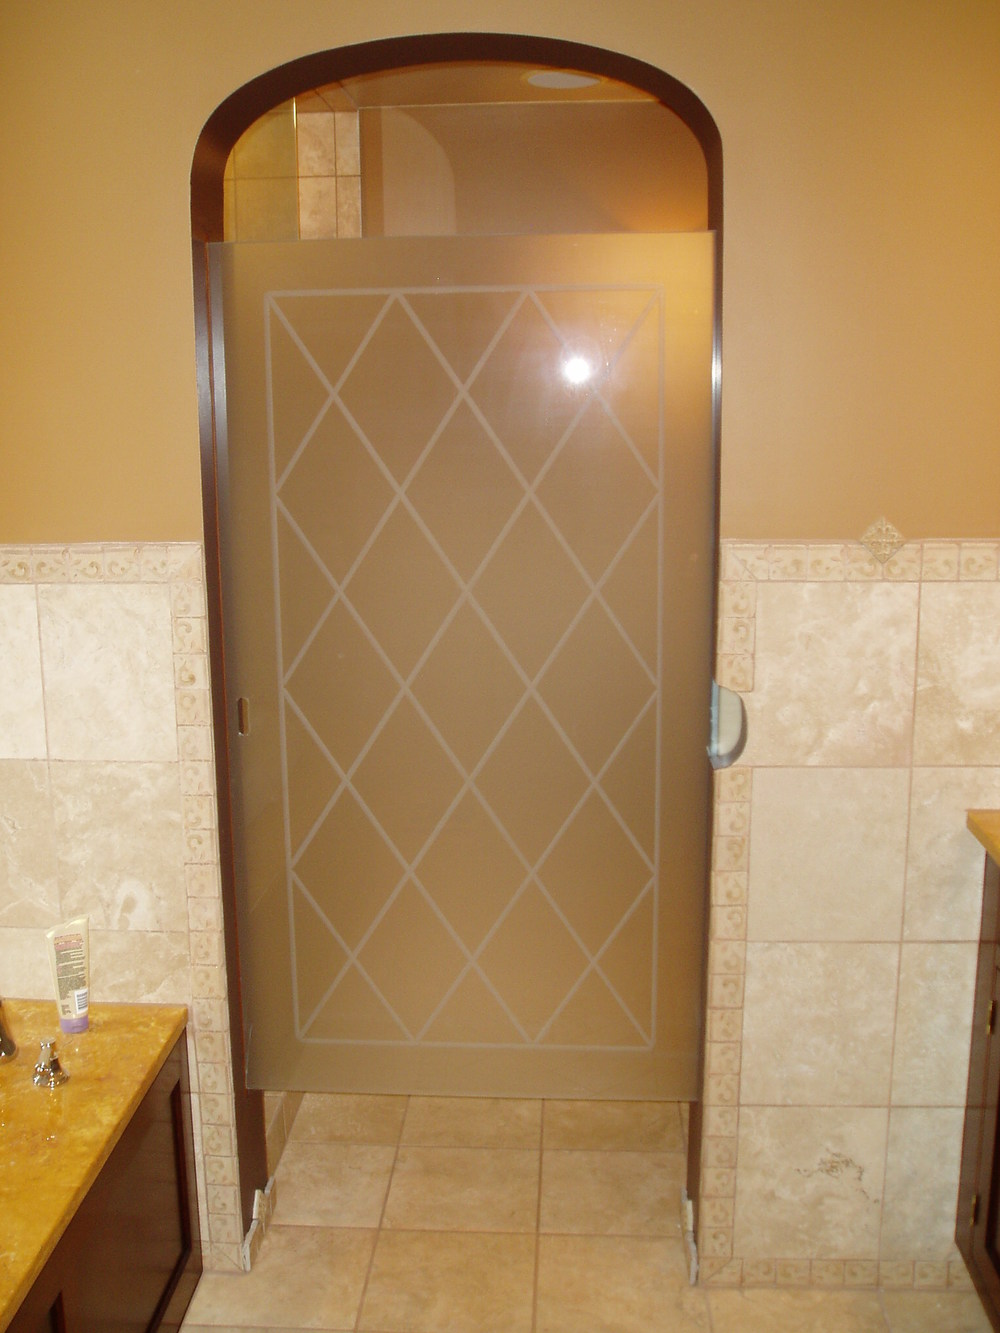 Vgroove pocket door.JPG